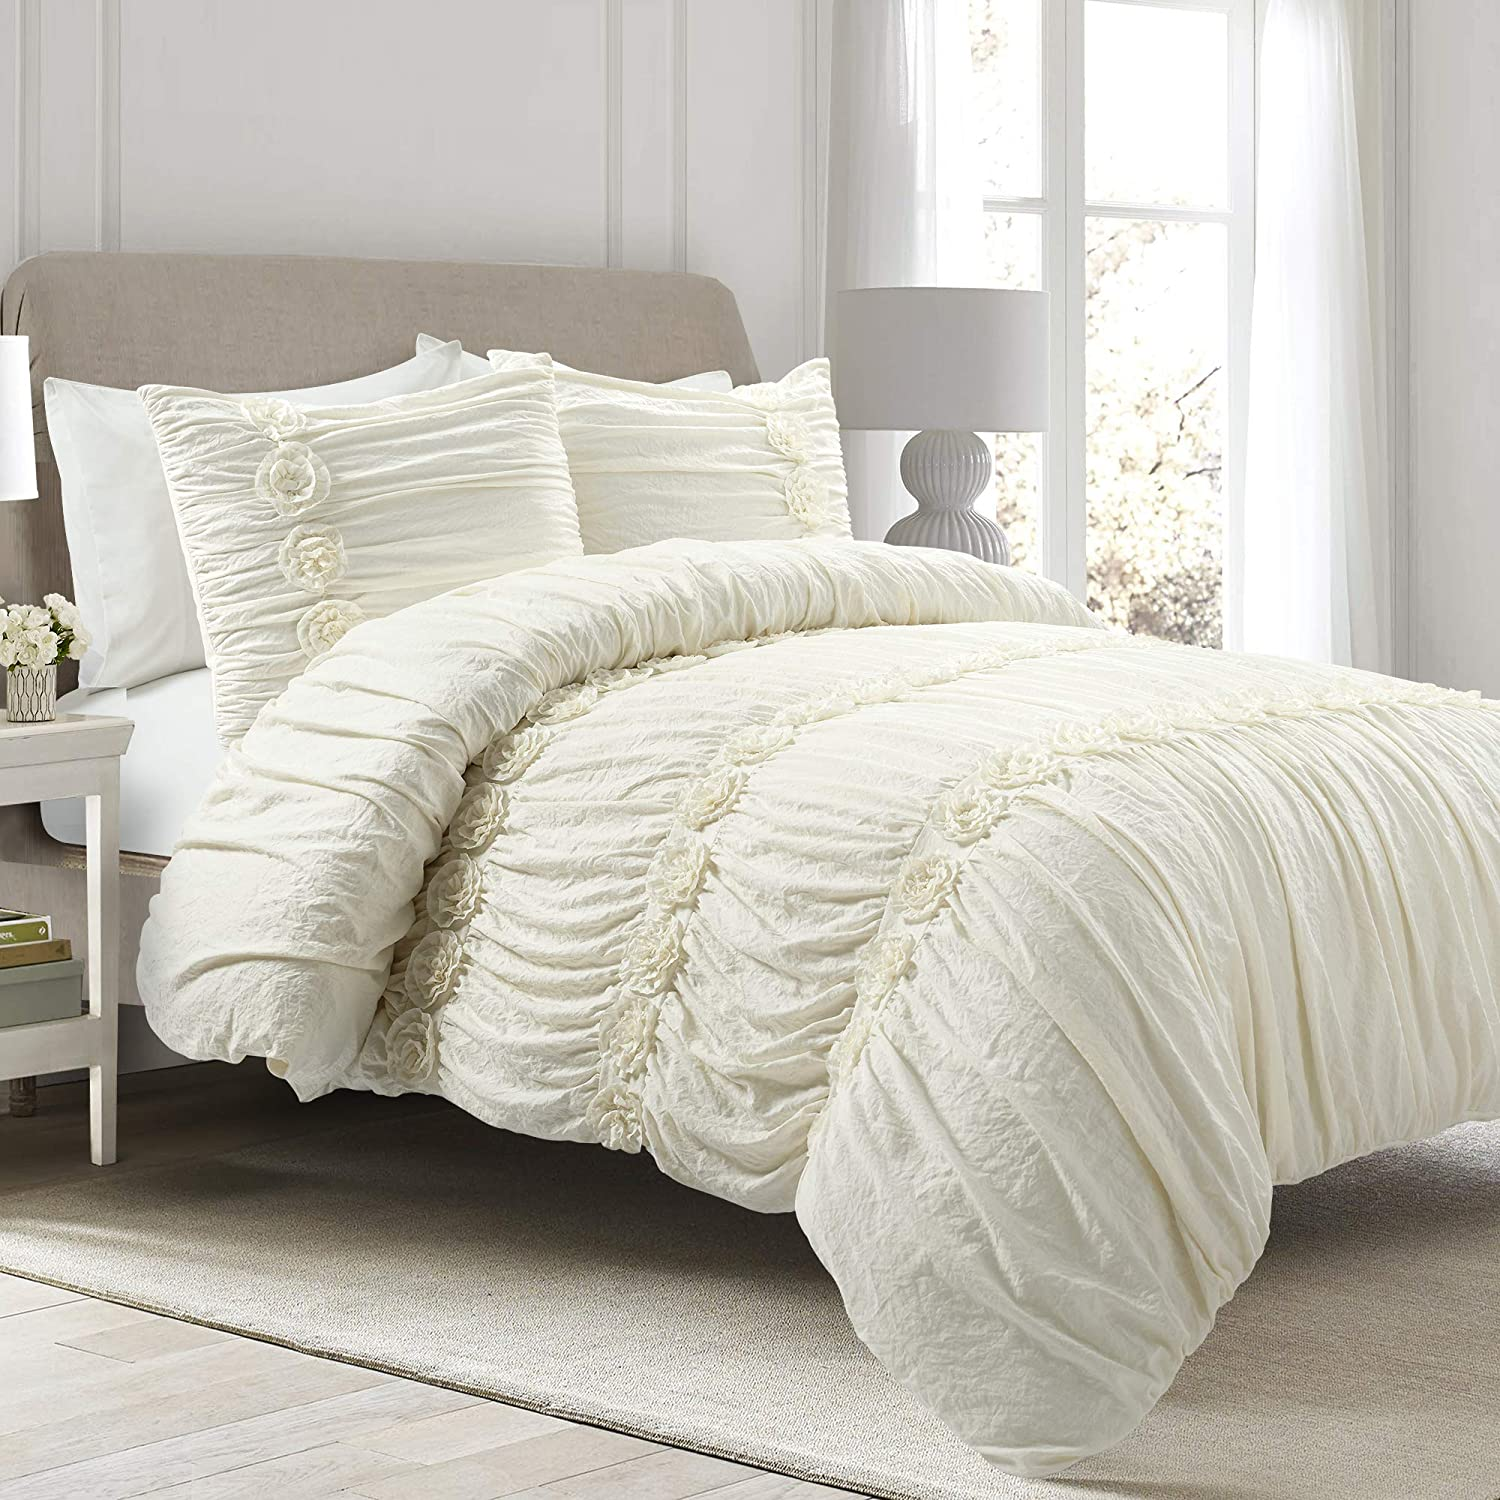 Lush Decor, Ivory Darla 3 Piece Comforter Set, King